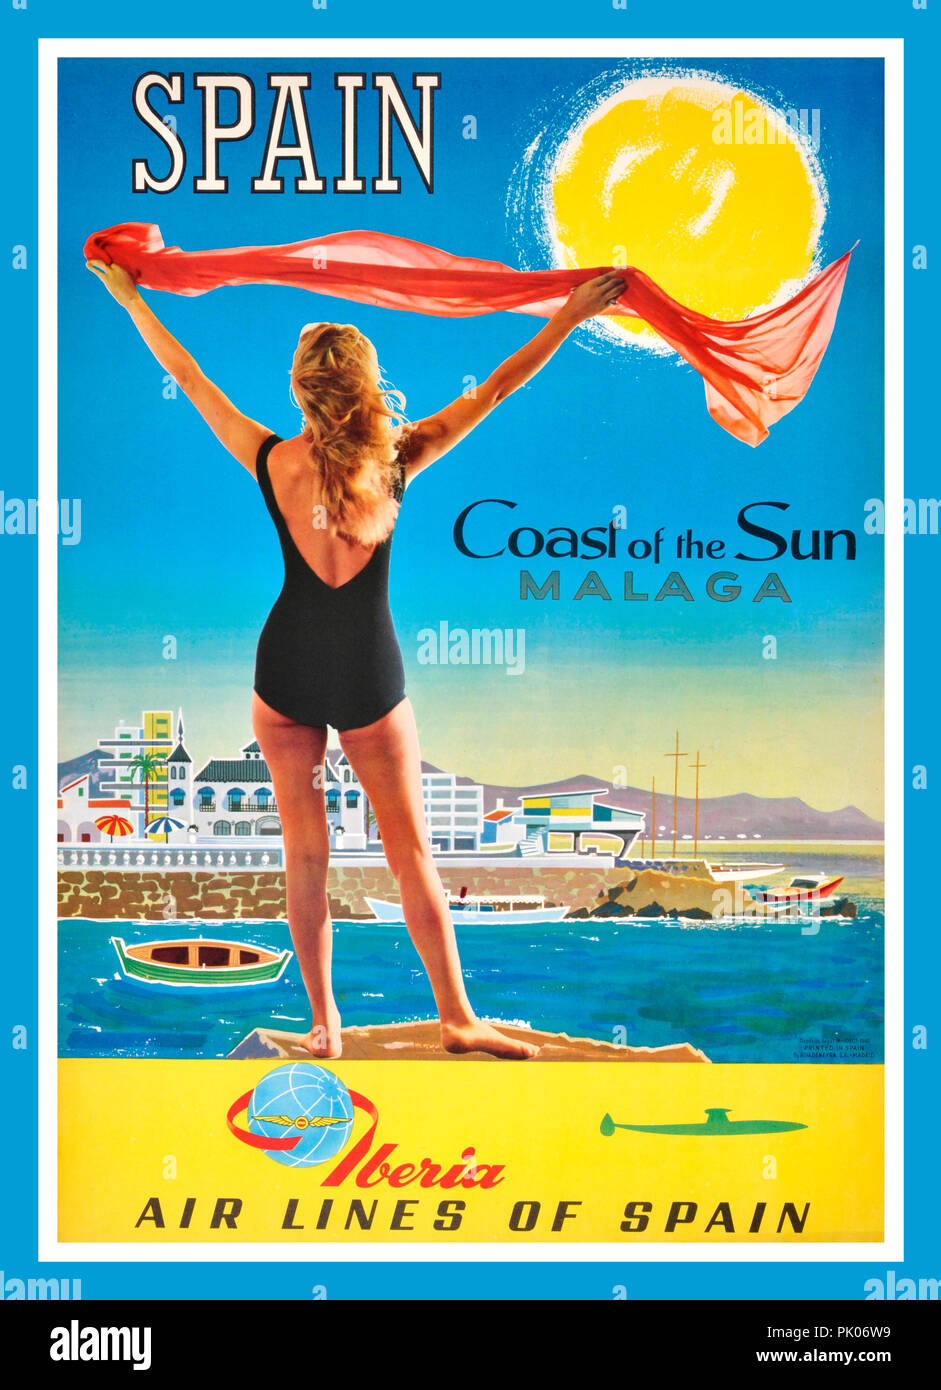 1960's Vintage Spanish Holiday Travel Poster Spain Malaga Iberia Airlines Original vintage Spanish travel poster advertising Malaga - Coast of the Sun - by Iberia Air Lines of Spain. Poster illustrating lady wearing one-piece swimsuit, holding up red scarf billowing in the wind with typical resort town, boats and a harbour wall on the sea and mountains on the horizon, a bright sun in the blue sky overhead. Iberia (Iberia, Lineas Aereas de Espana, S.A. Operadora, Sociedad Unipersonal) is the national flag carrier of Spain, founded in 1927. Historic Vintage Travel Poster, Spain, 1960's - Stock Image